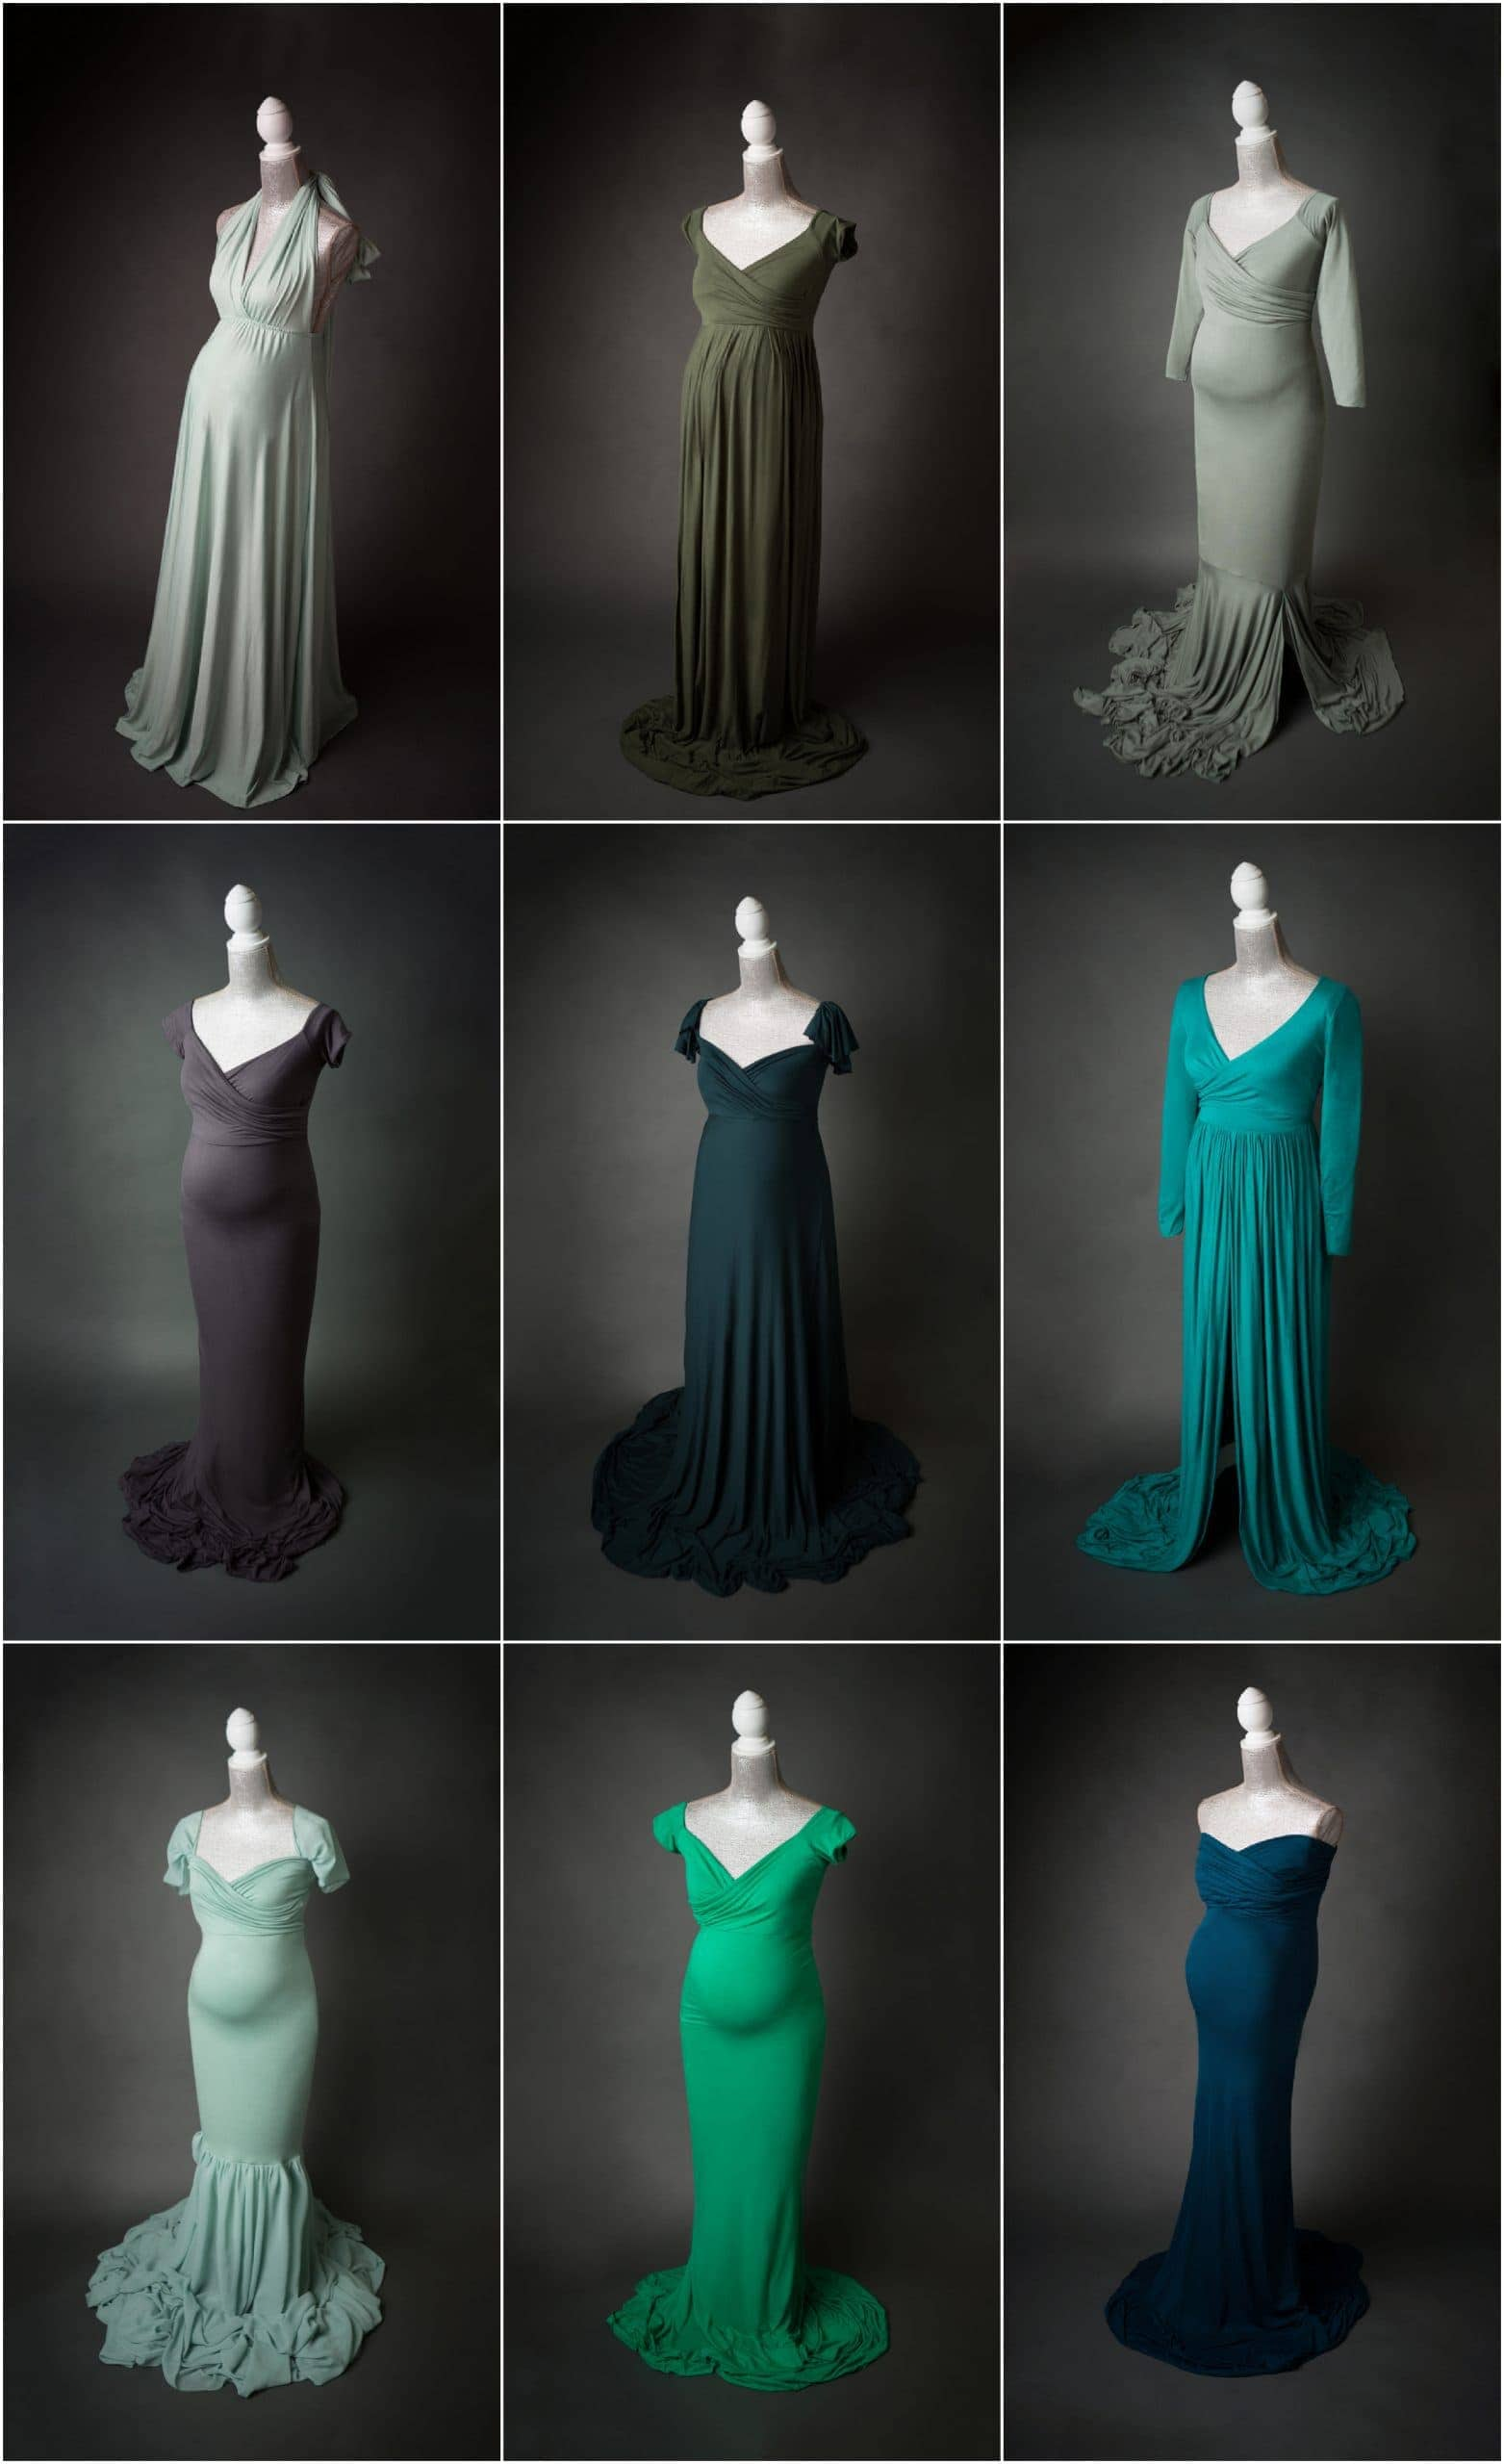 green sage and emerald maternity photo shoot dresses for portraits in san antonio, texas by jenn brookover photography